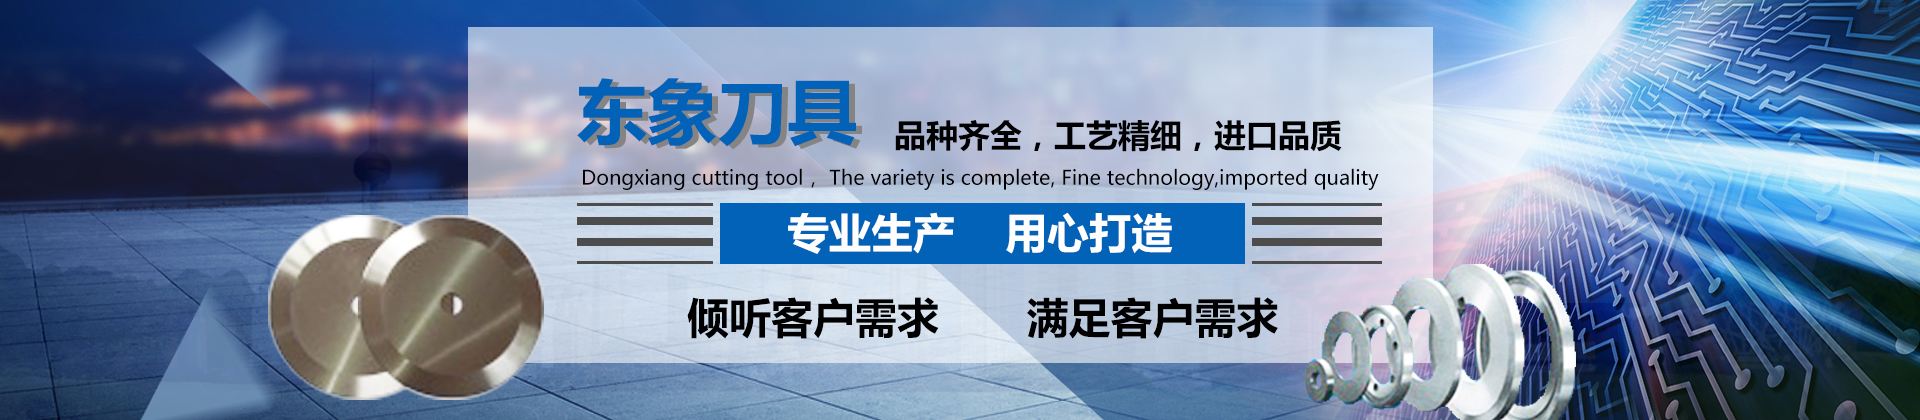 http://www.dongxiangdp.cn/data/images/slide/20190813162100_243.jpg